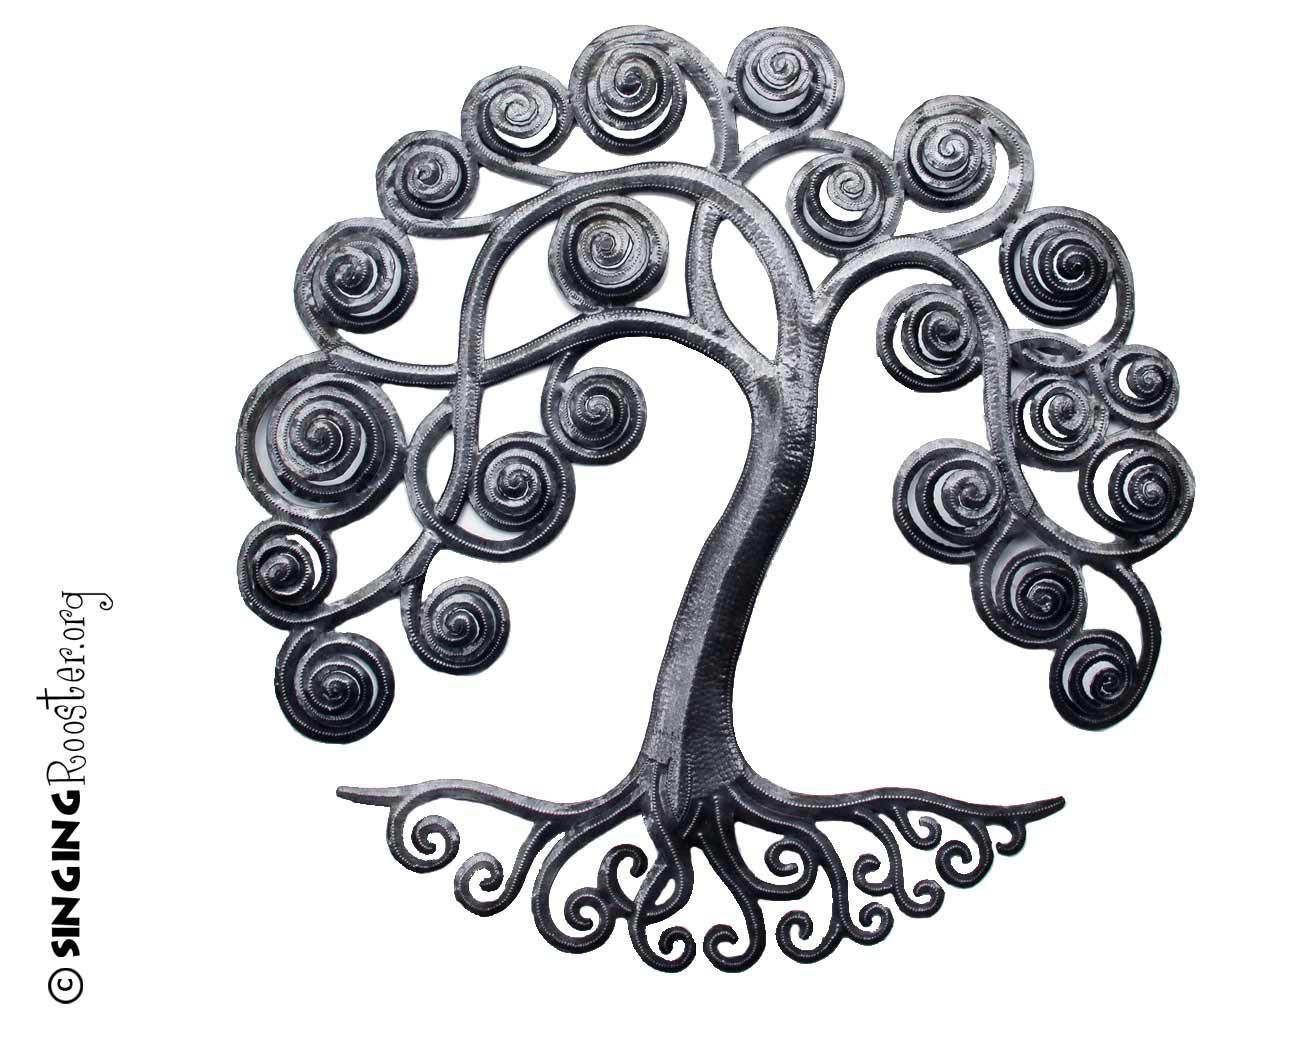 Where To Buy Metal Wall Art 6″ Mini Curly Tree Of Lifehaitian Metal Wall Art  Indoors Or